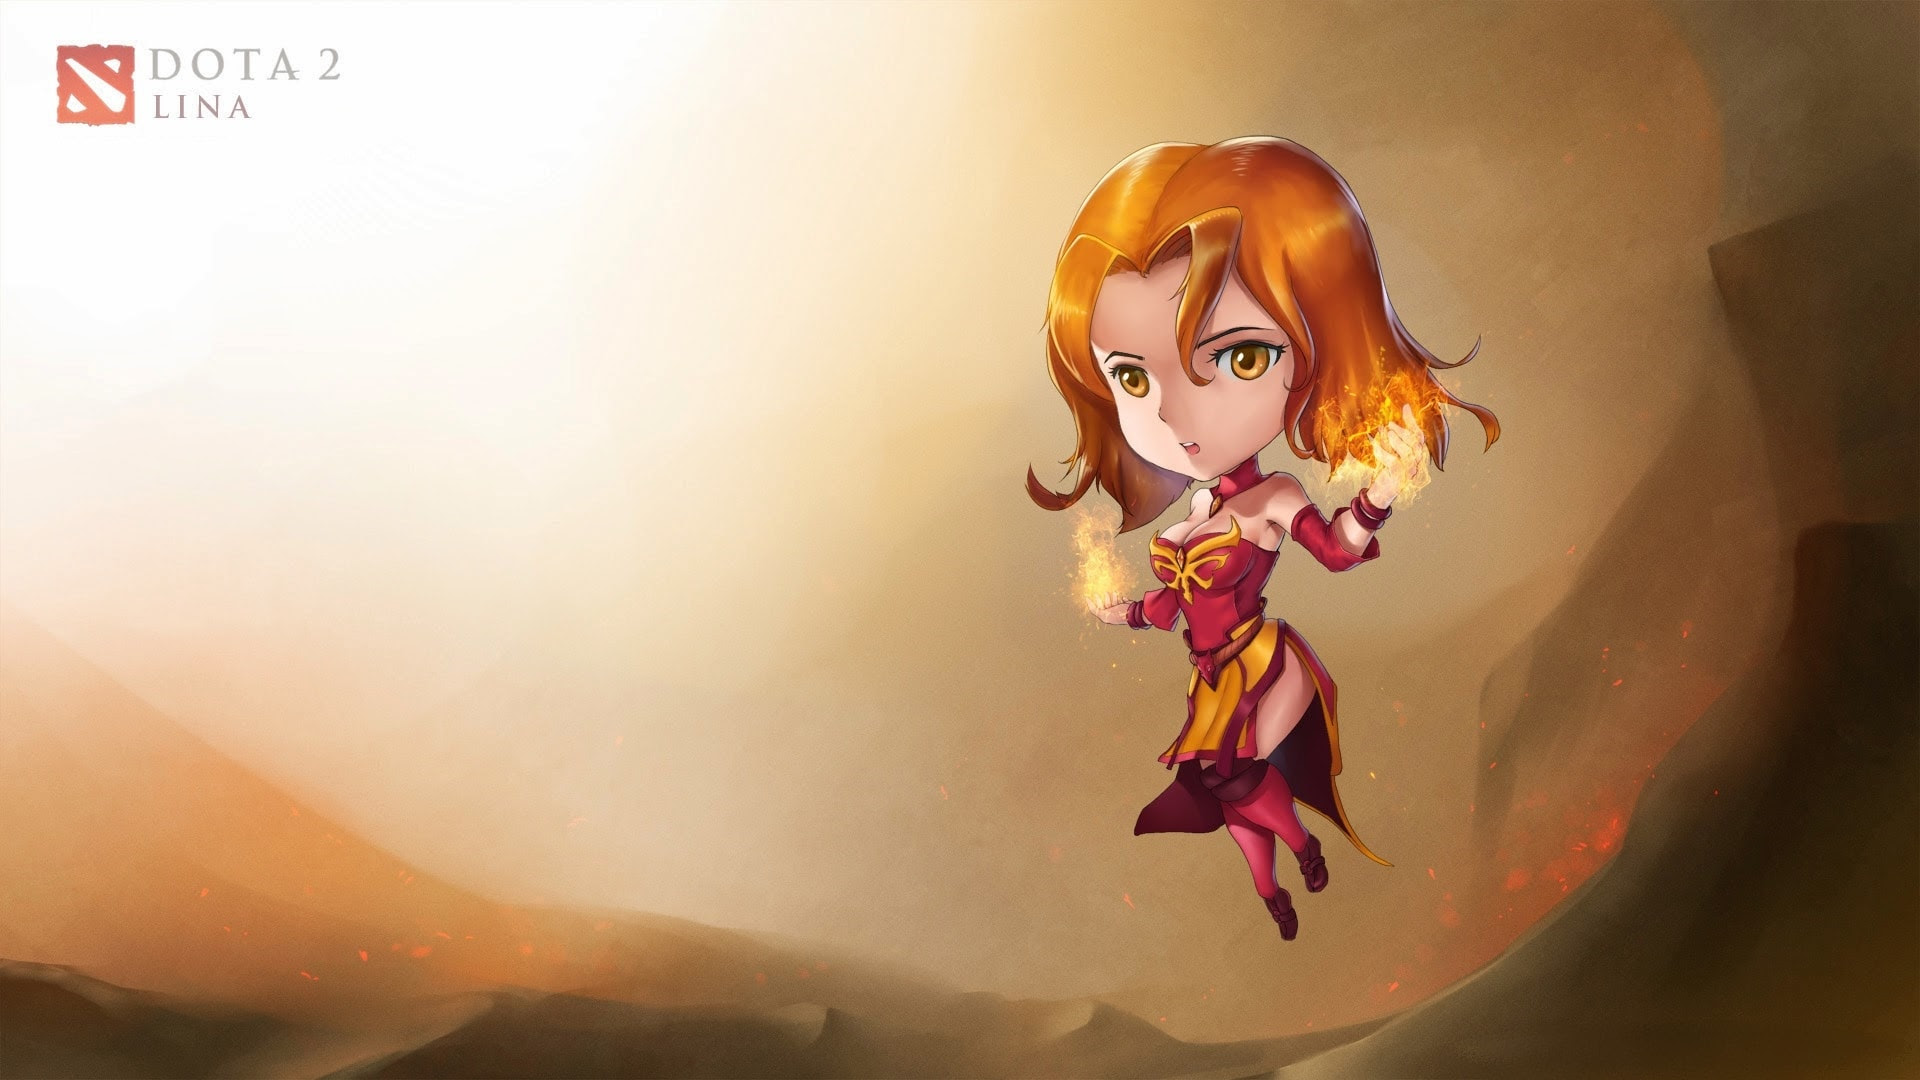 Dota2 Lina Hd Wallpapers 7wallpapers Net